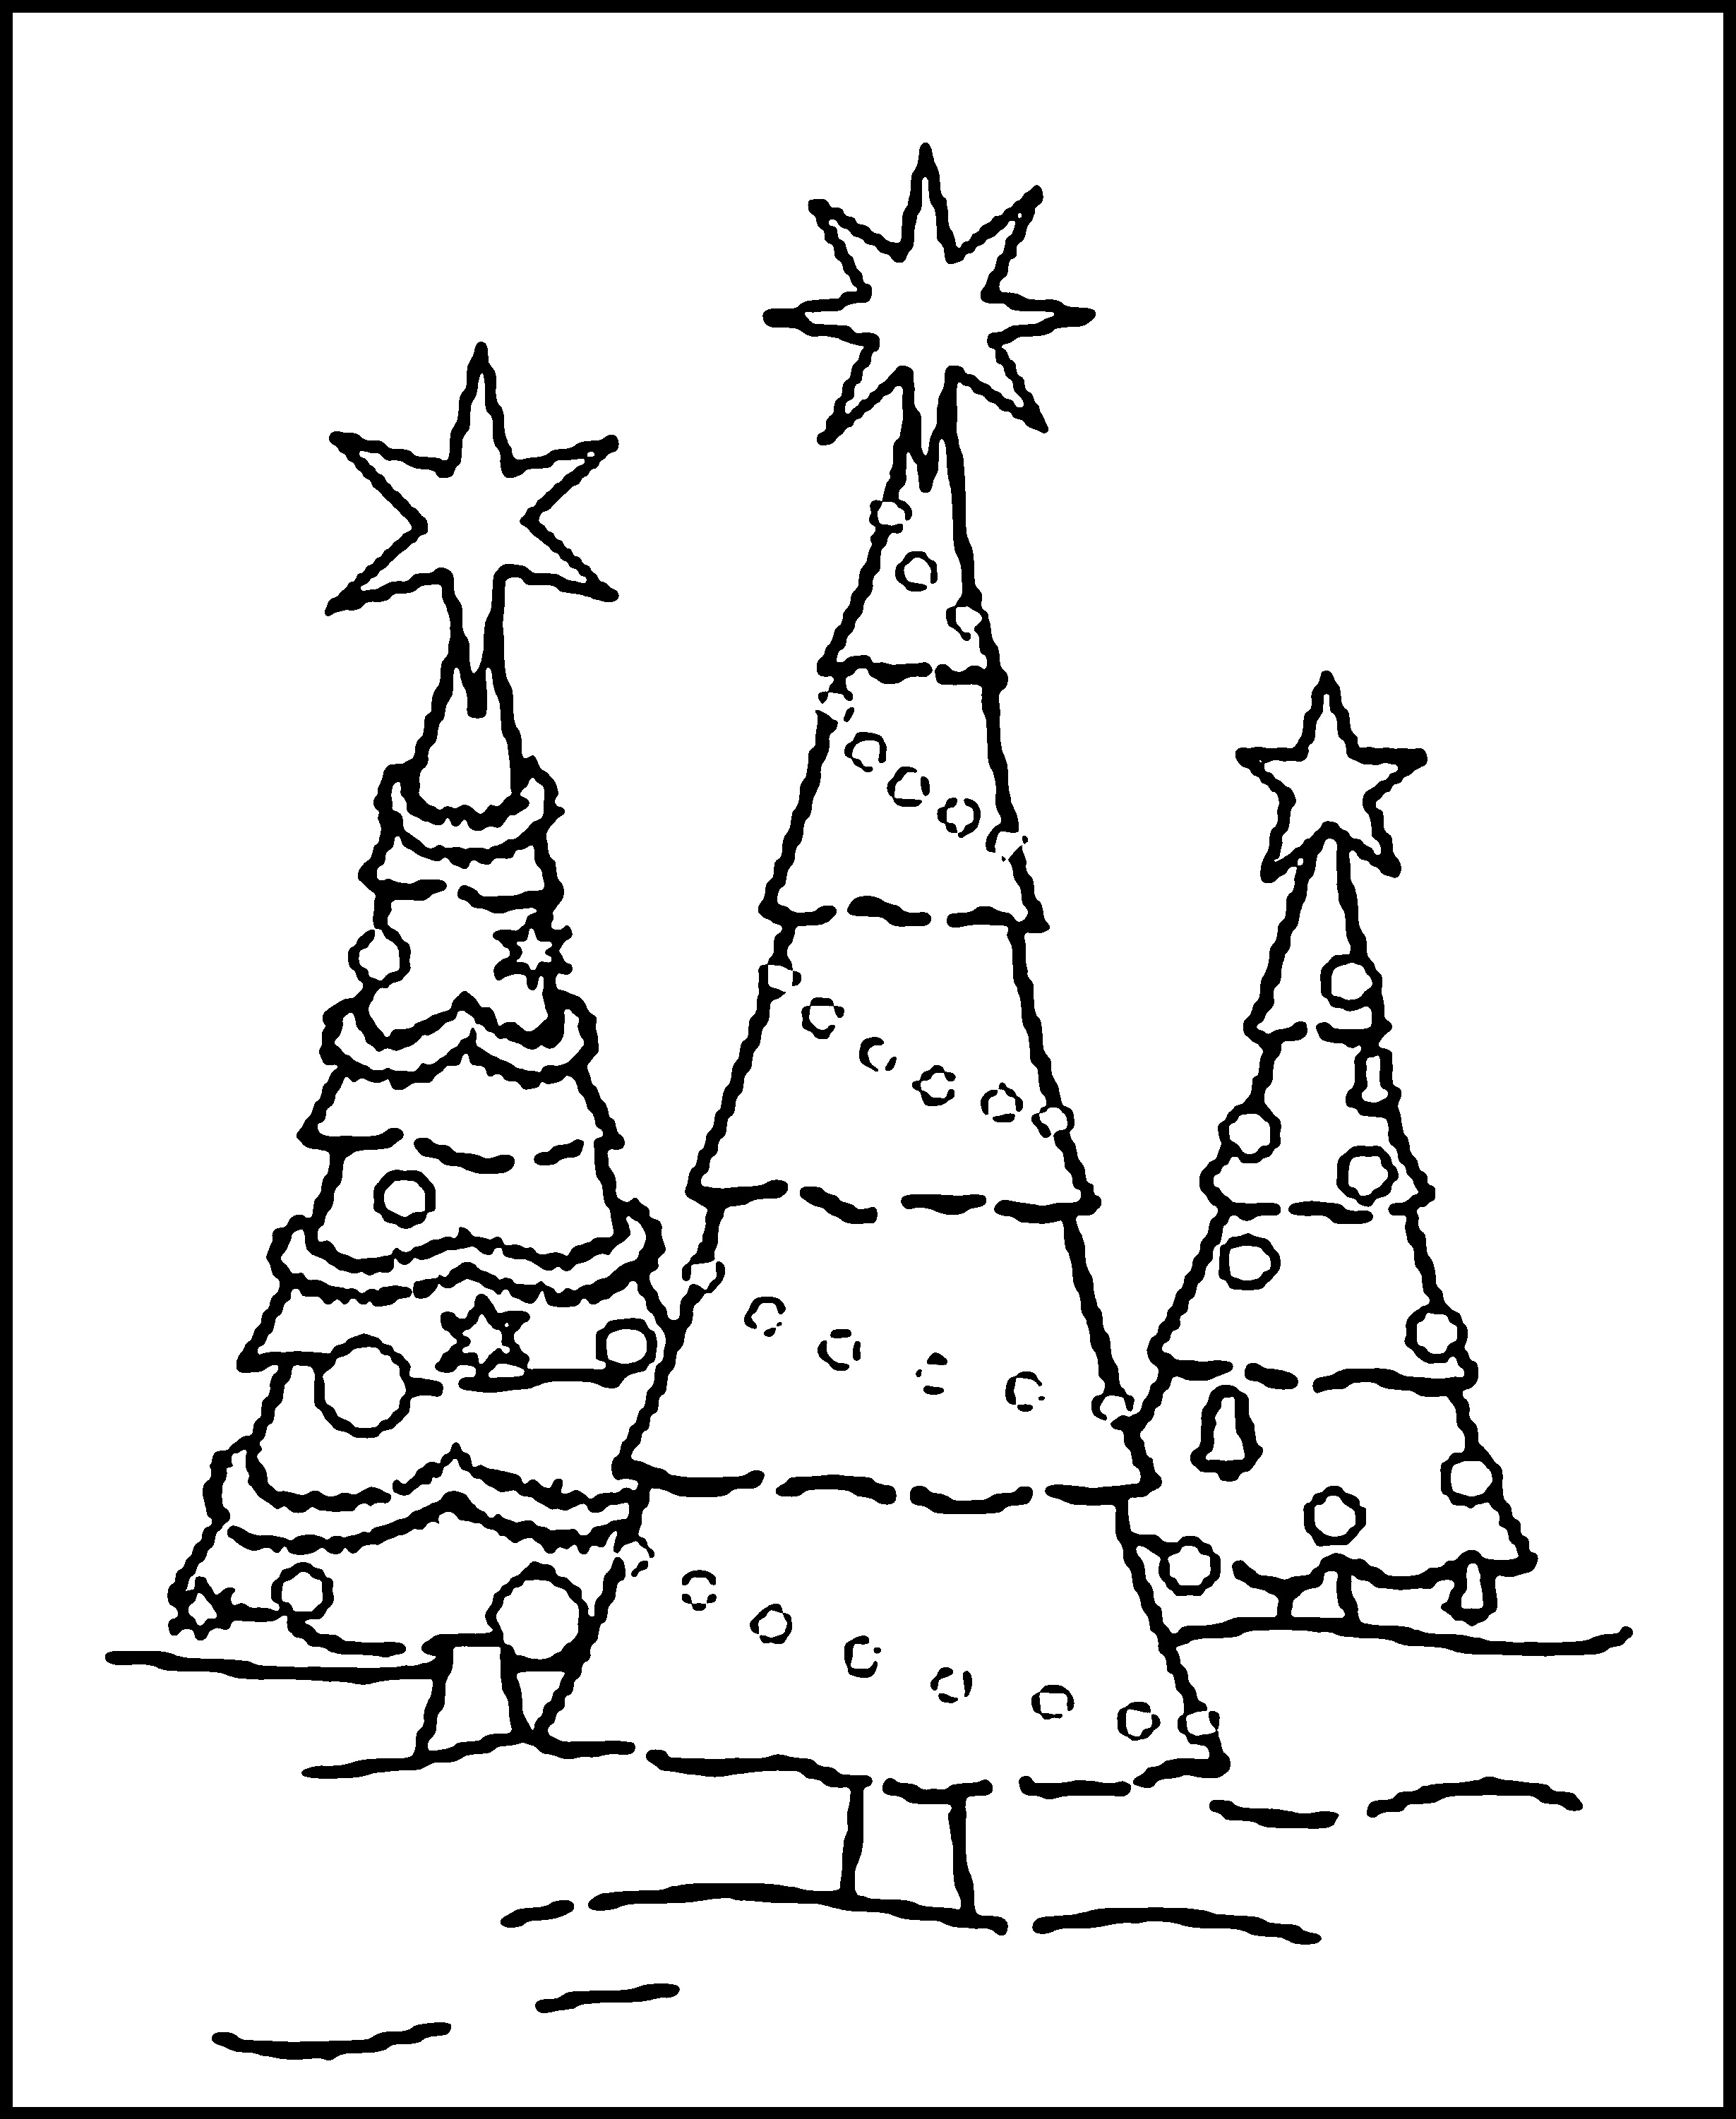 Adult Christmas Tree Coloring Pages Download Printable Of Noted Coloring Picture A Tree Pages Unknown Resolutions Printable